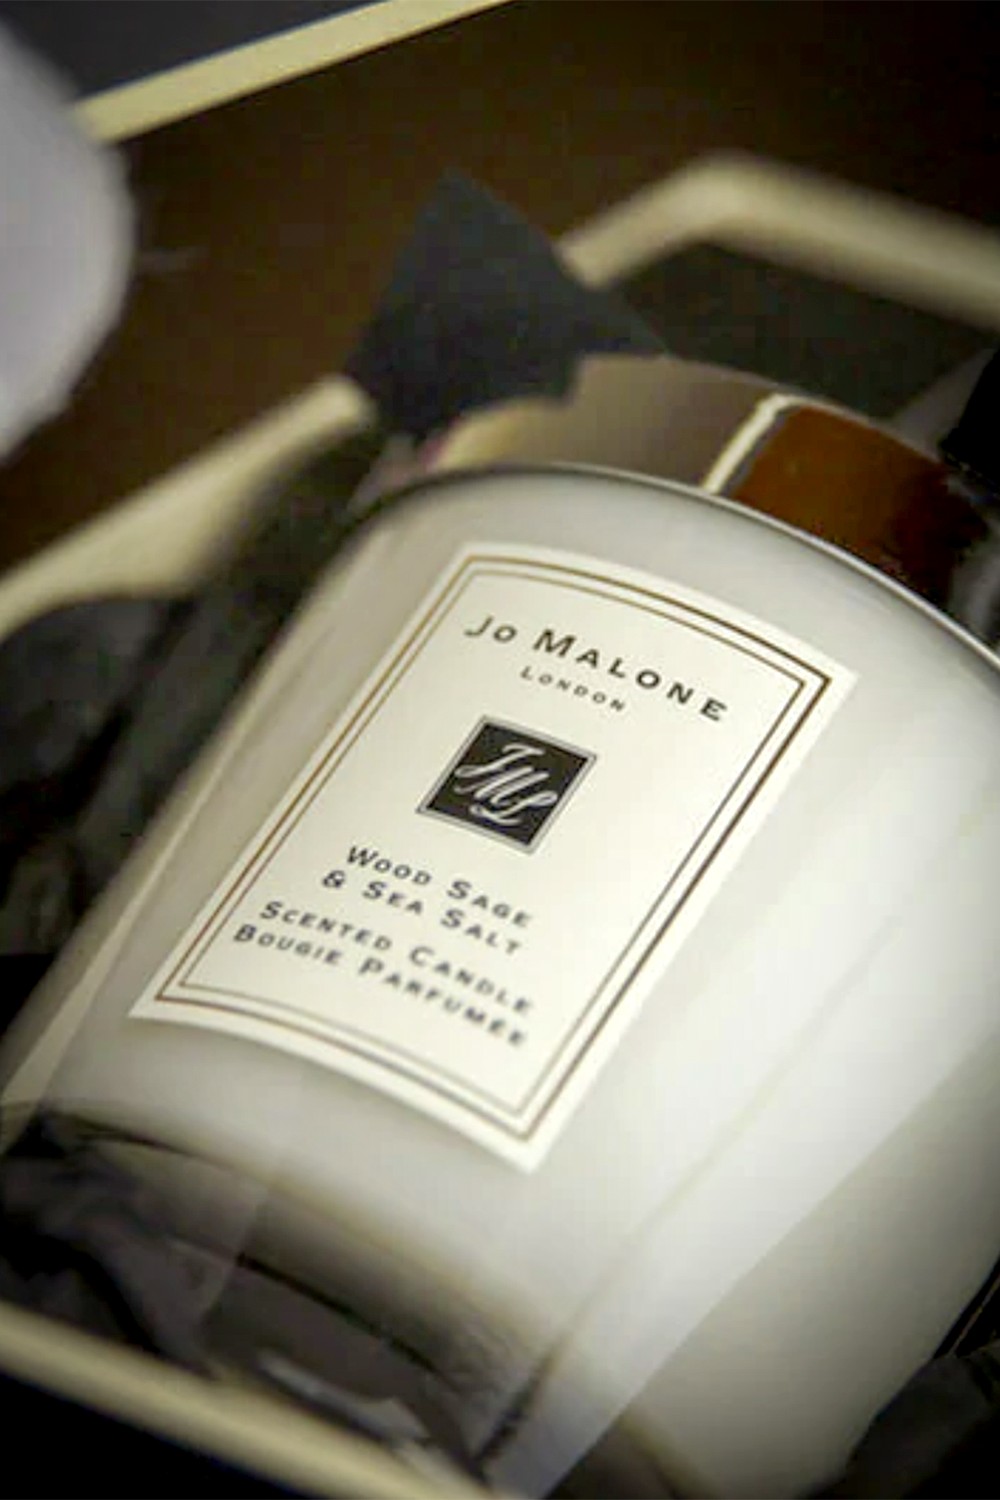 Jo Malone Wood Sage & Sea Salt candle in a display box.